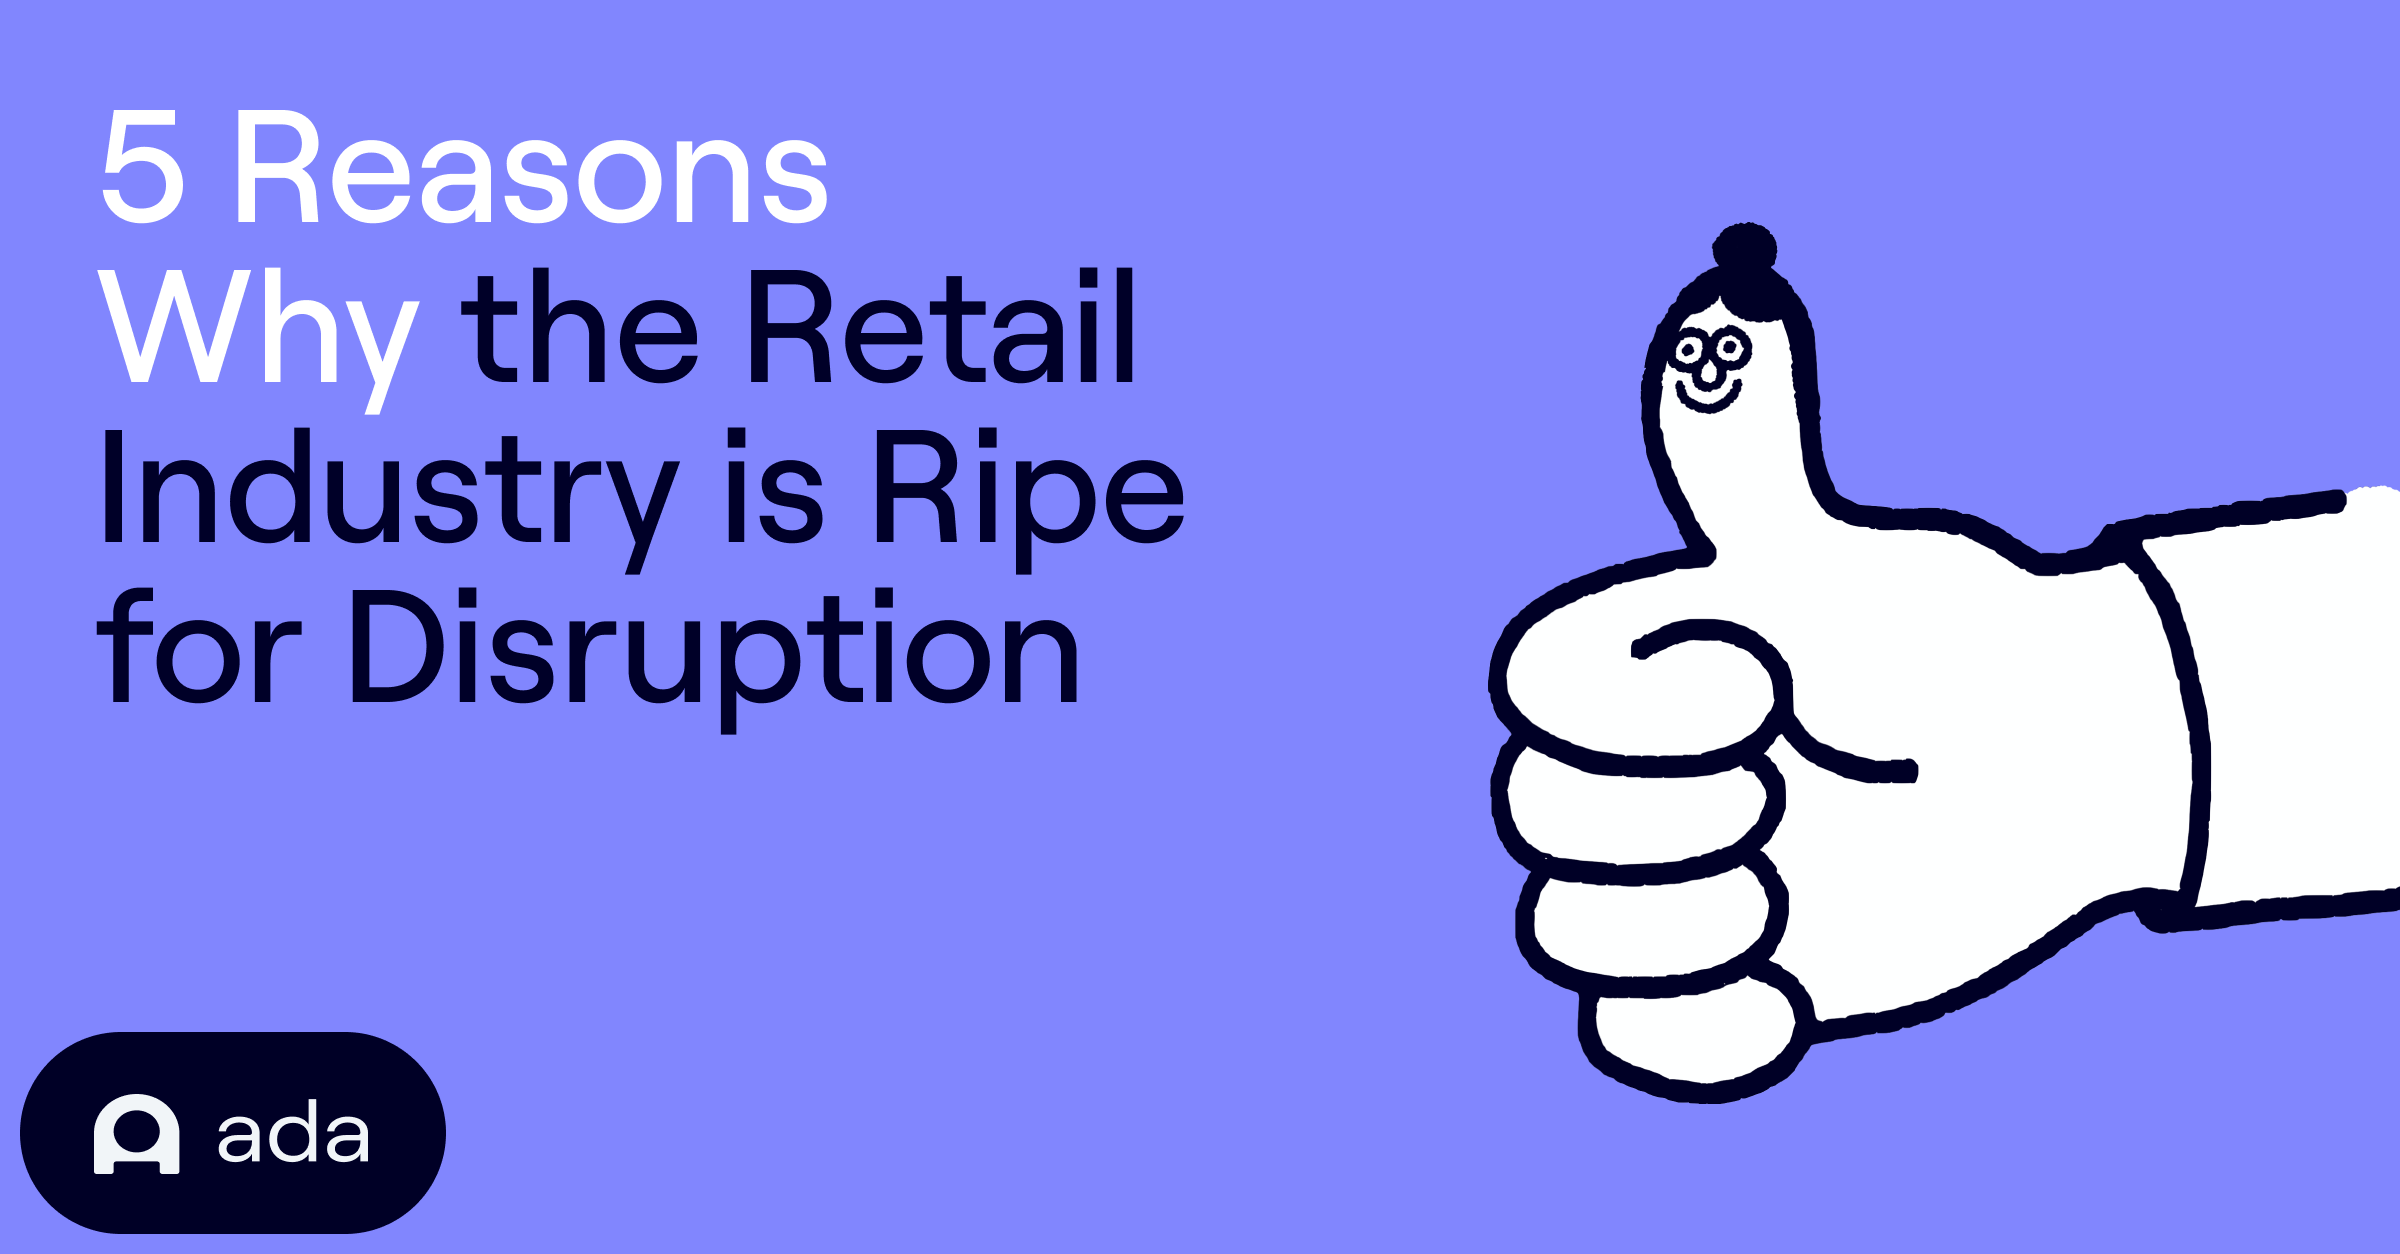 5 reasons why Retail